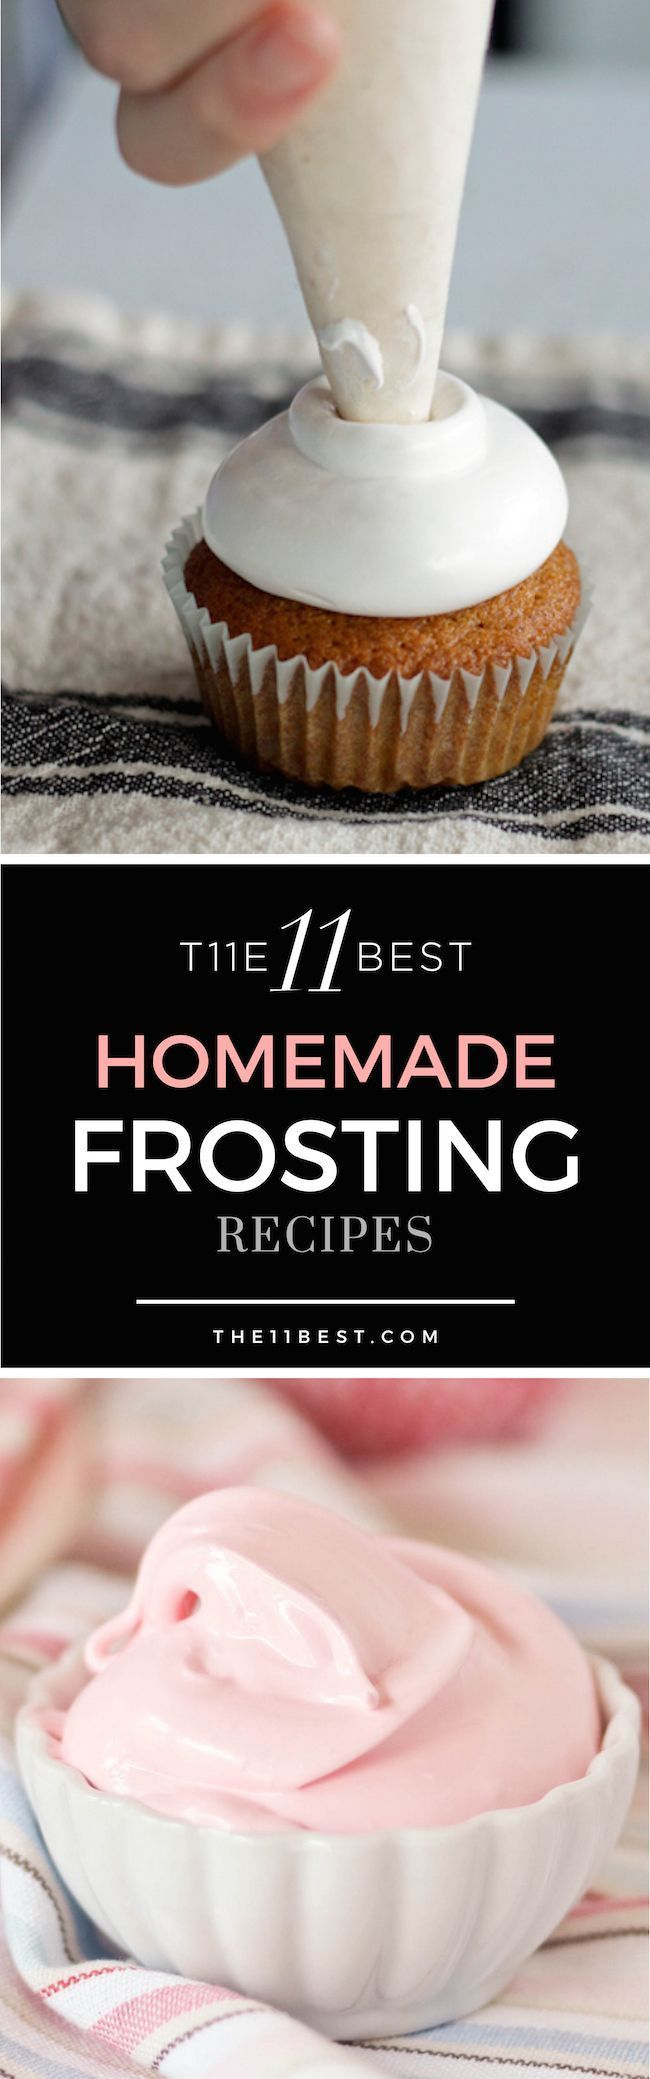 The 11 Best Homemade Frosting Recipes